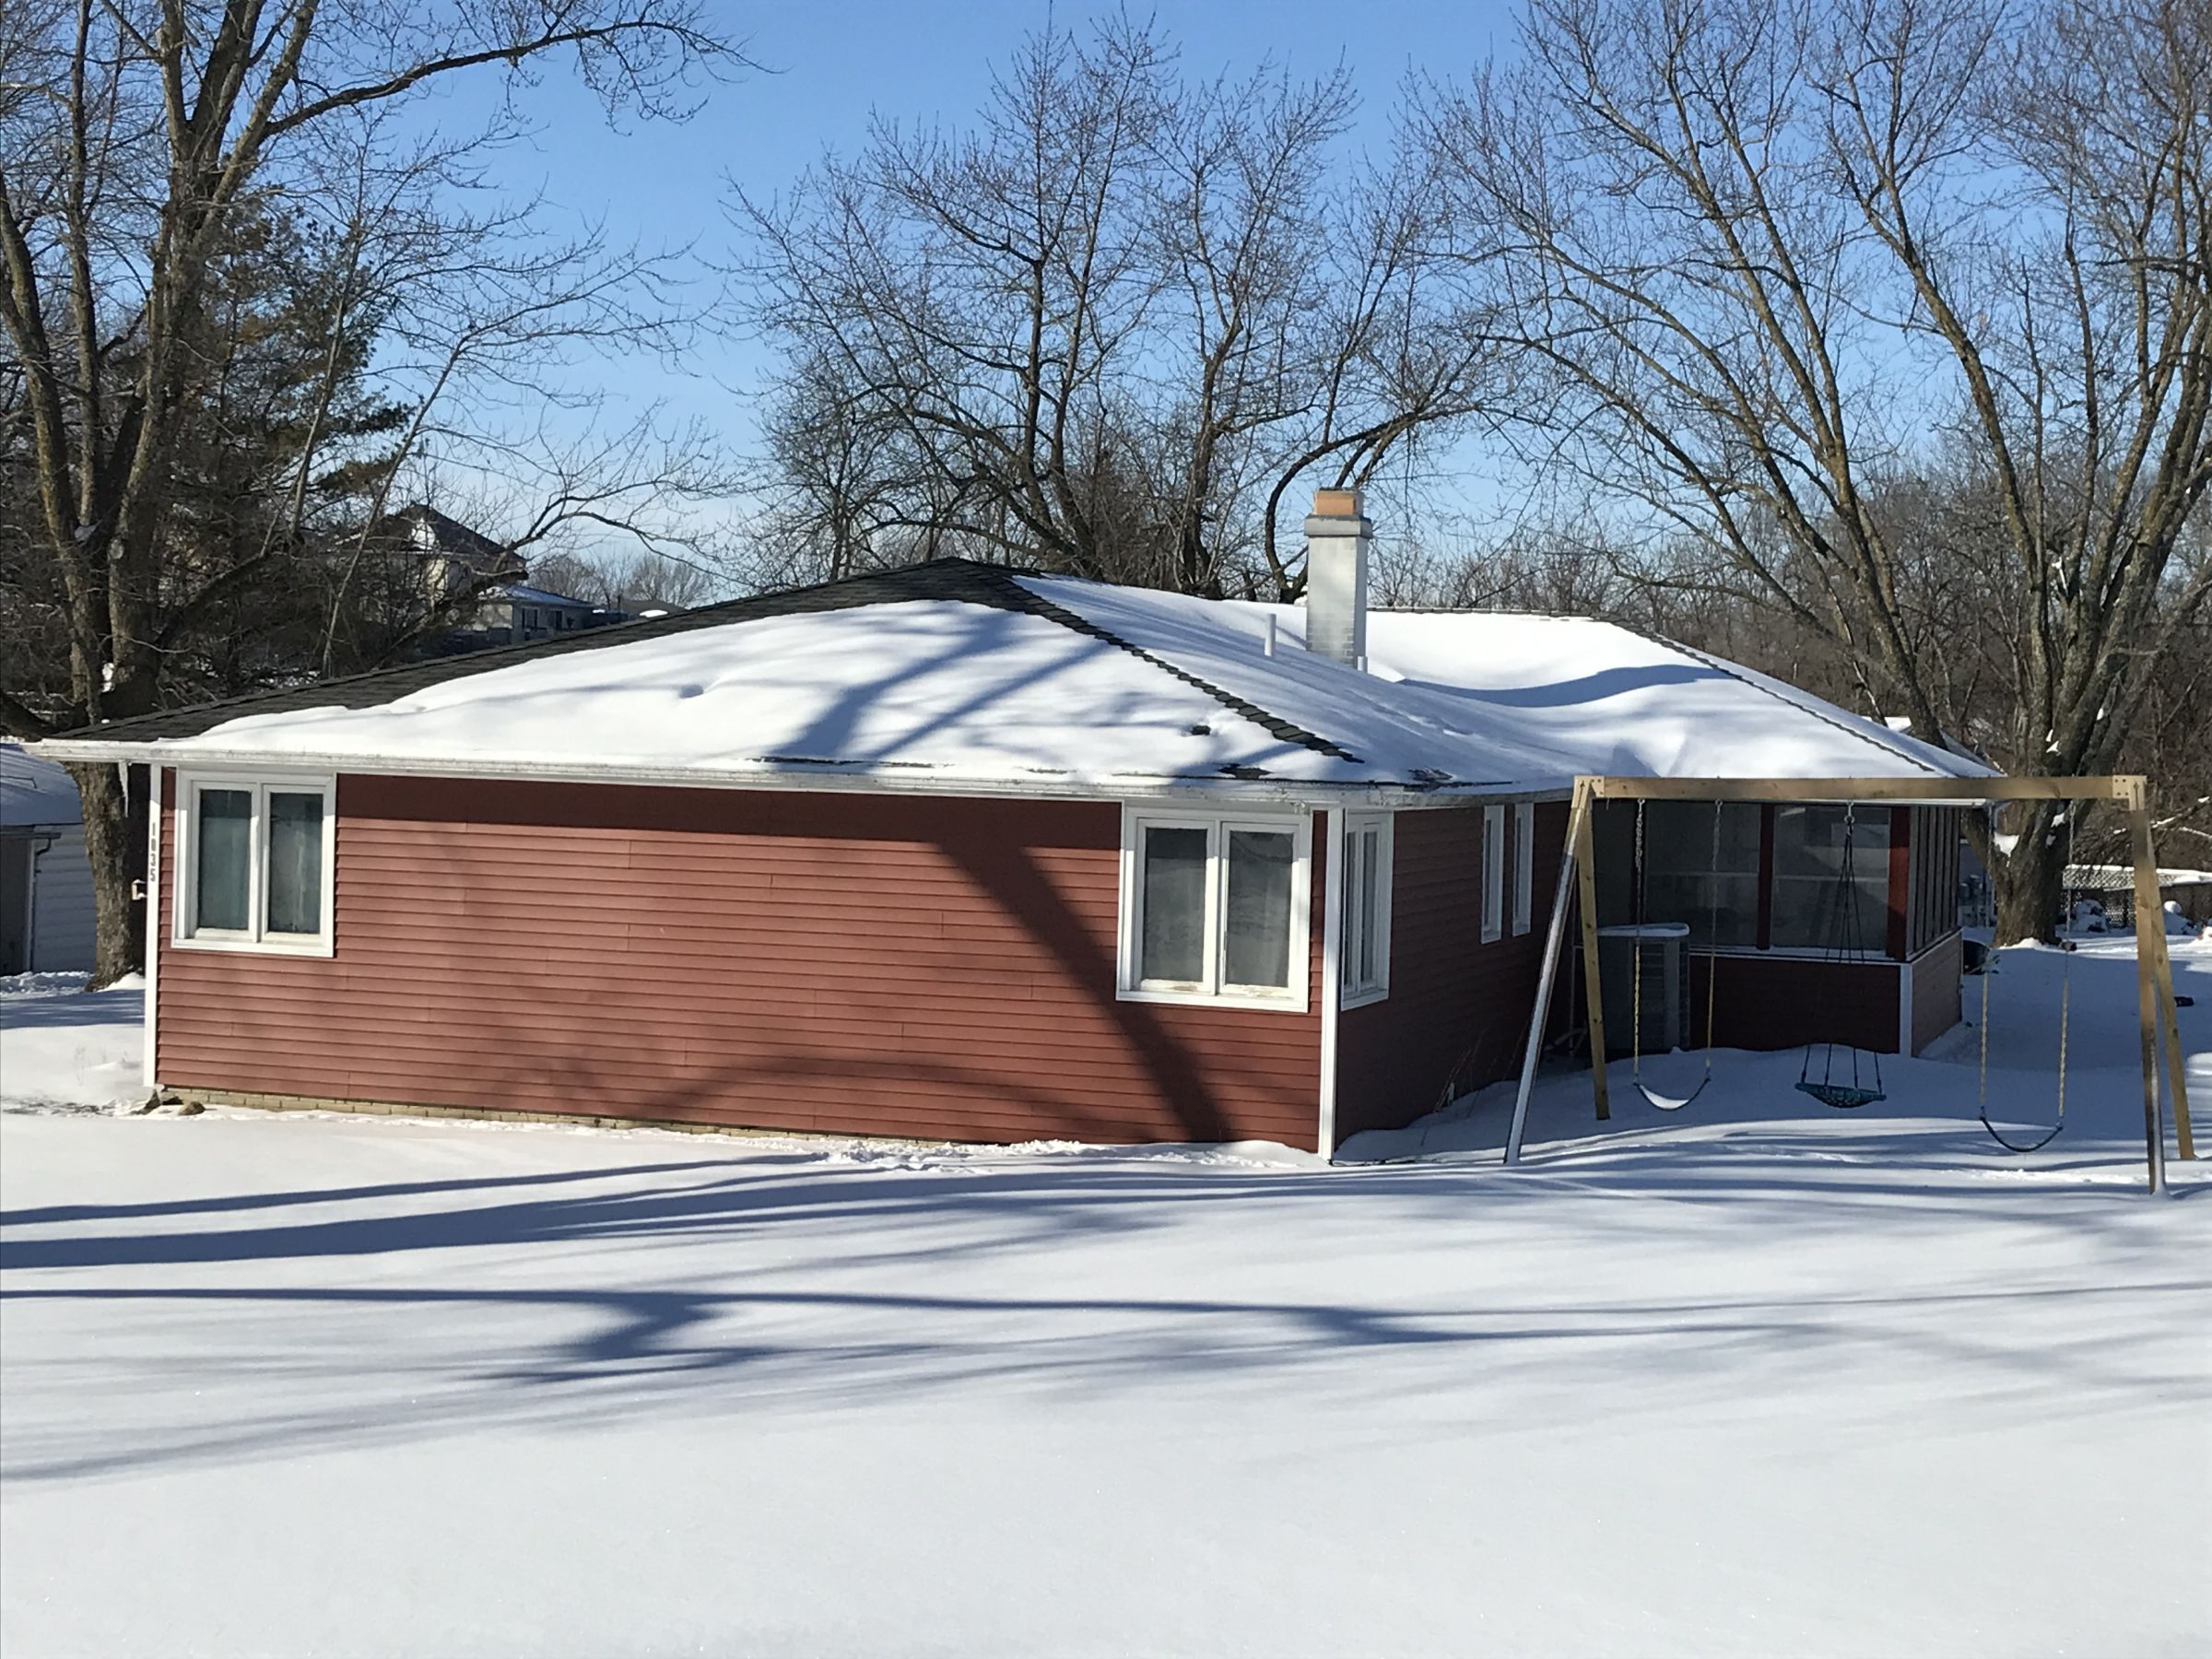 residential-lucas-county-iowa-0-acres-listing-number-15320-2-2021-02-01-152114.jpg